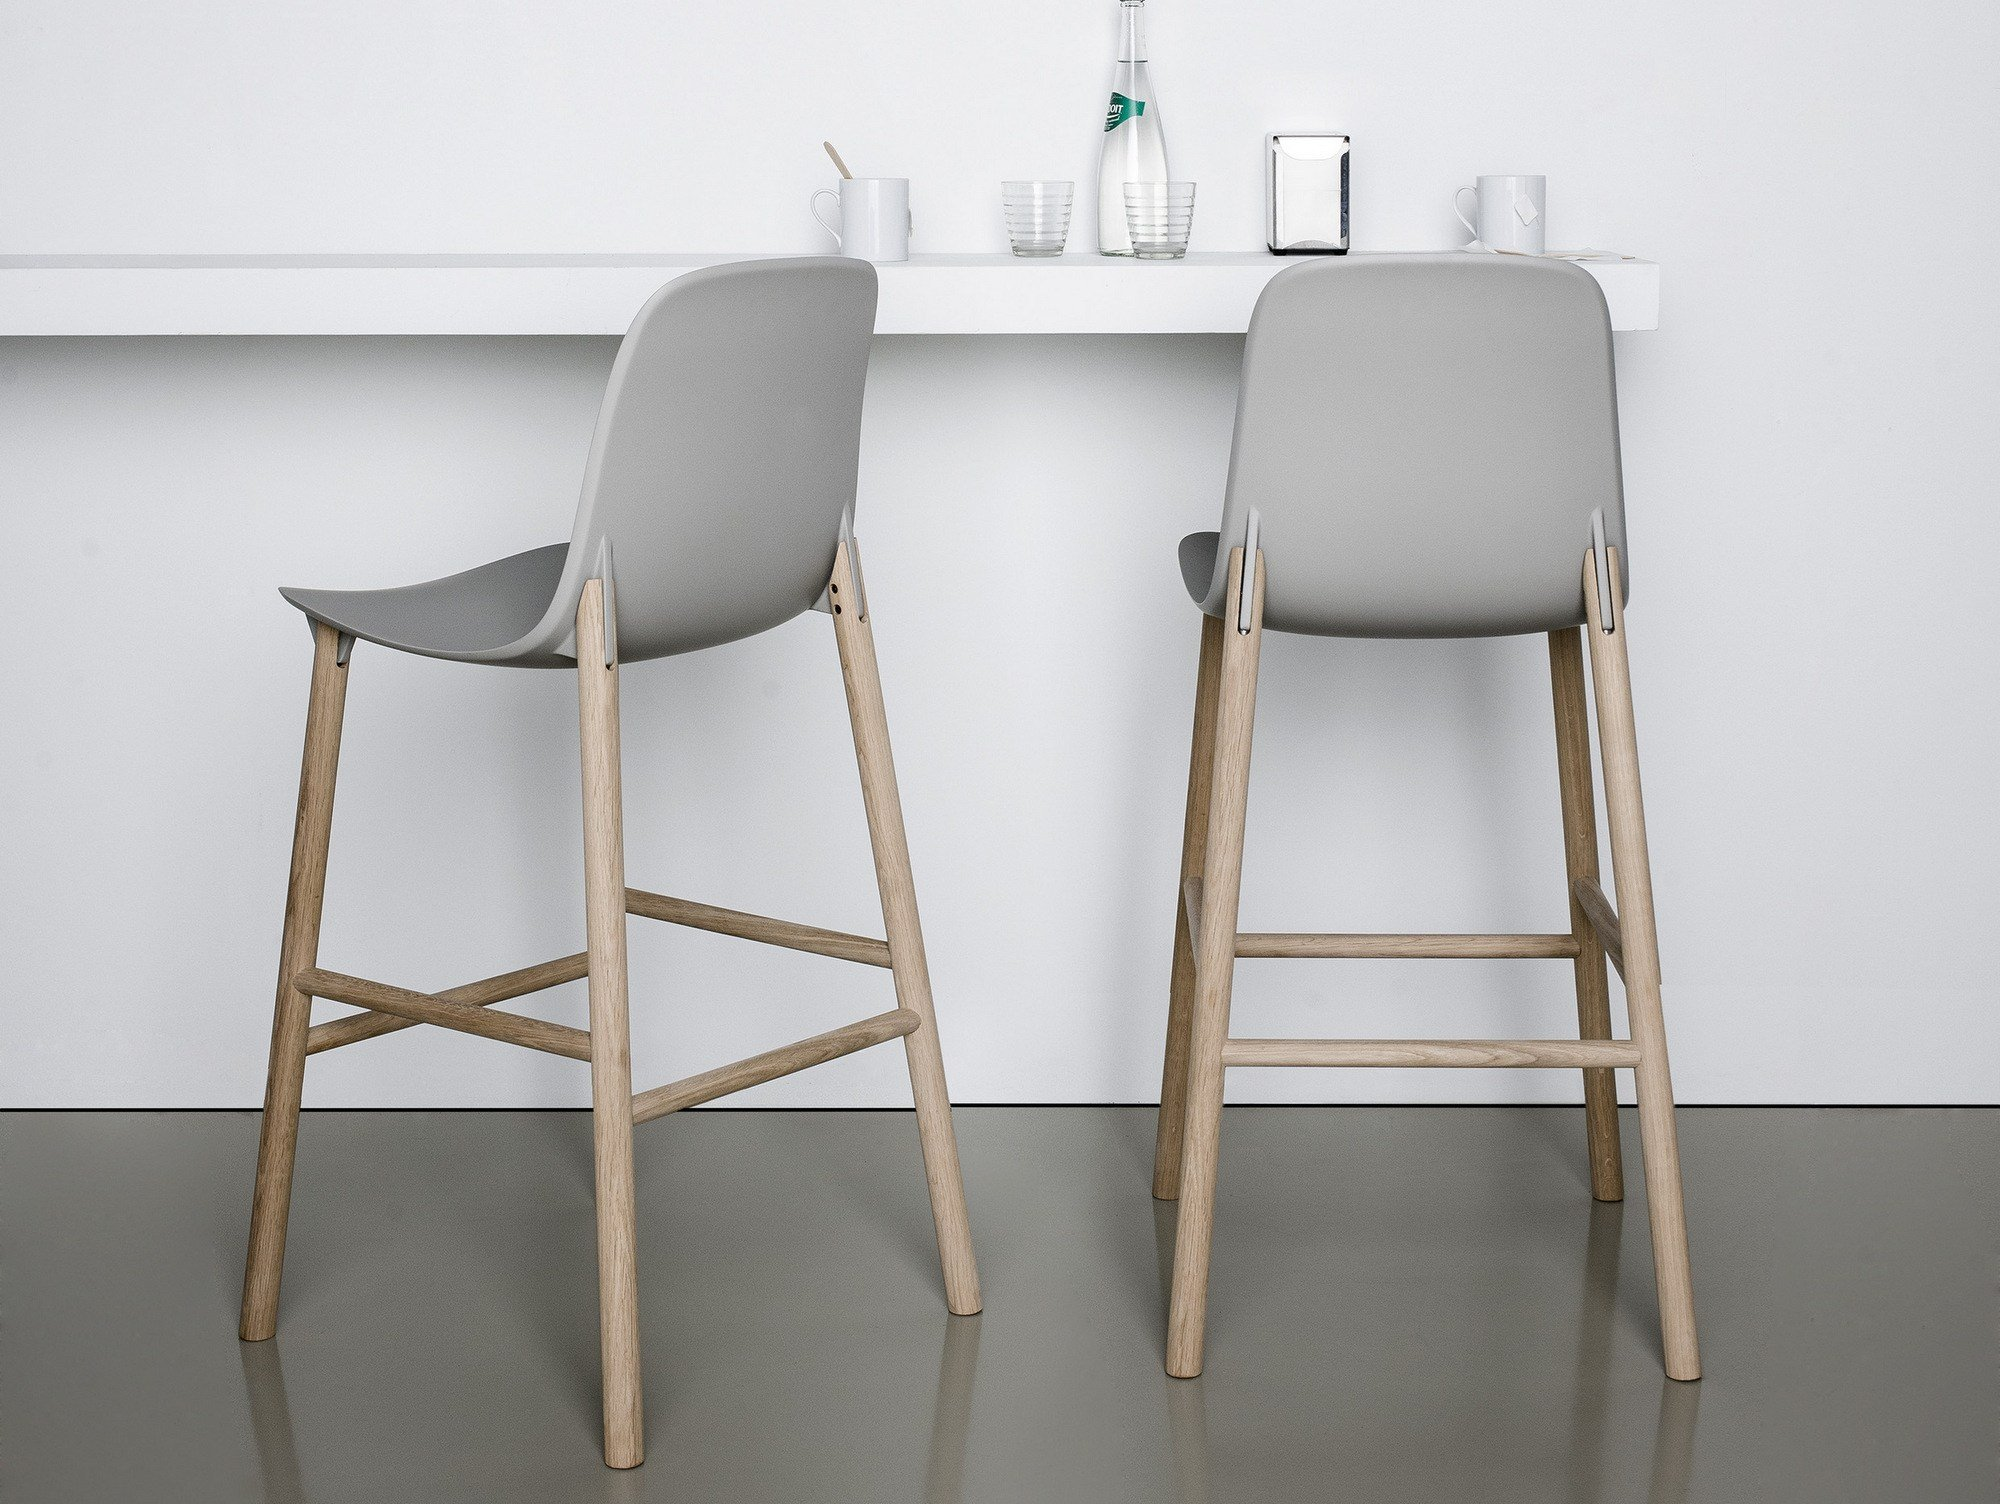 Sharky counter stool by kristalia design eva paster for Sillas altas para barra